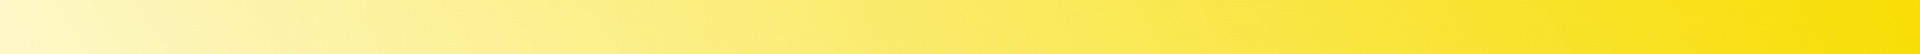 yellow-gradient-background-1461271359KTH.jpg